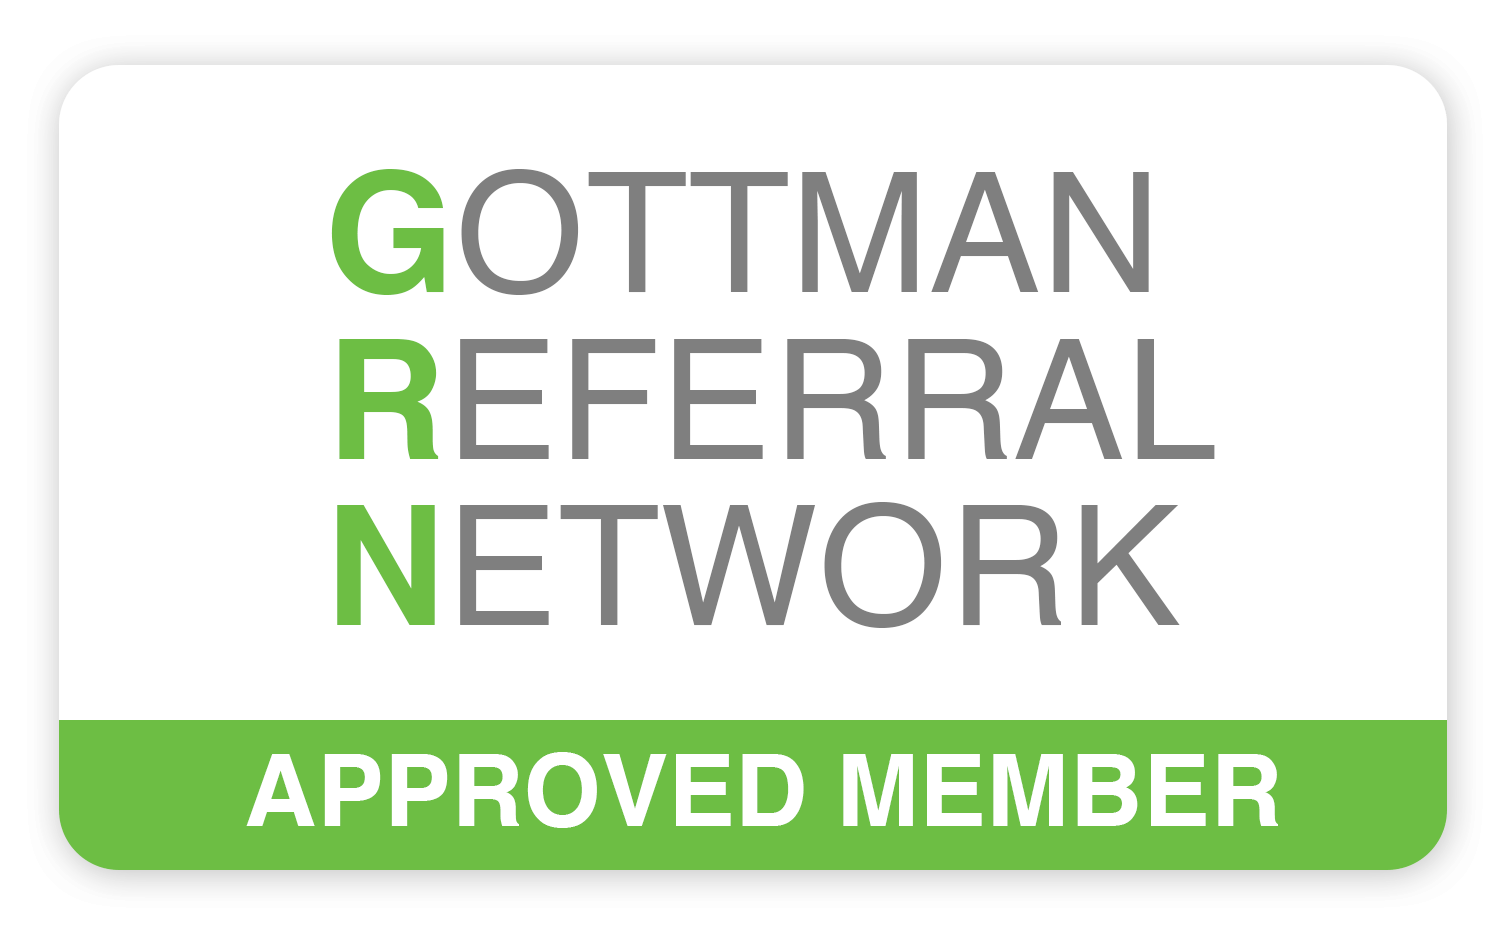 Elizabeth Pincott's profile on the Gottman Referral Network